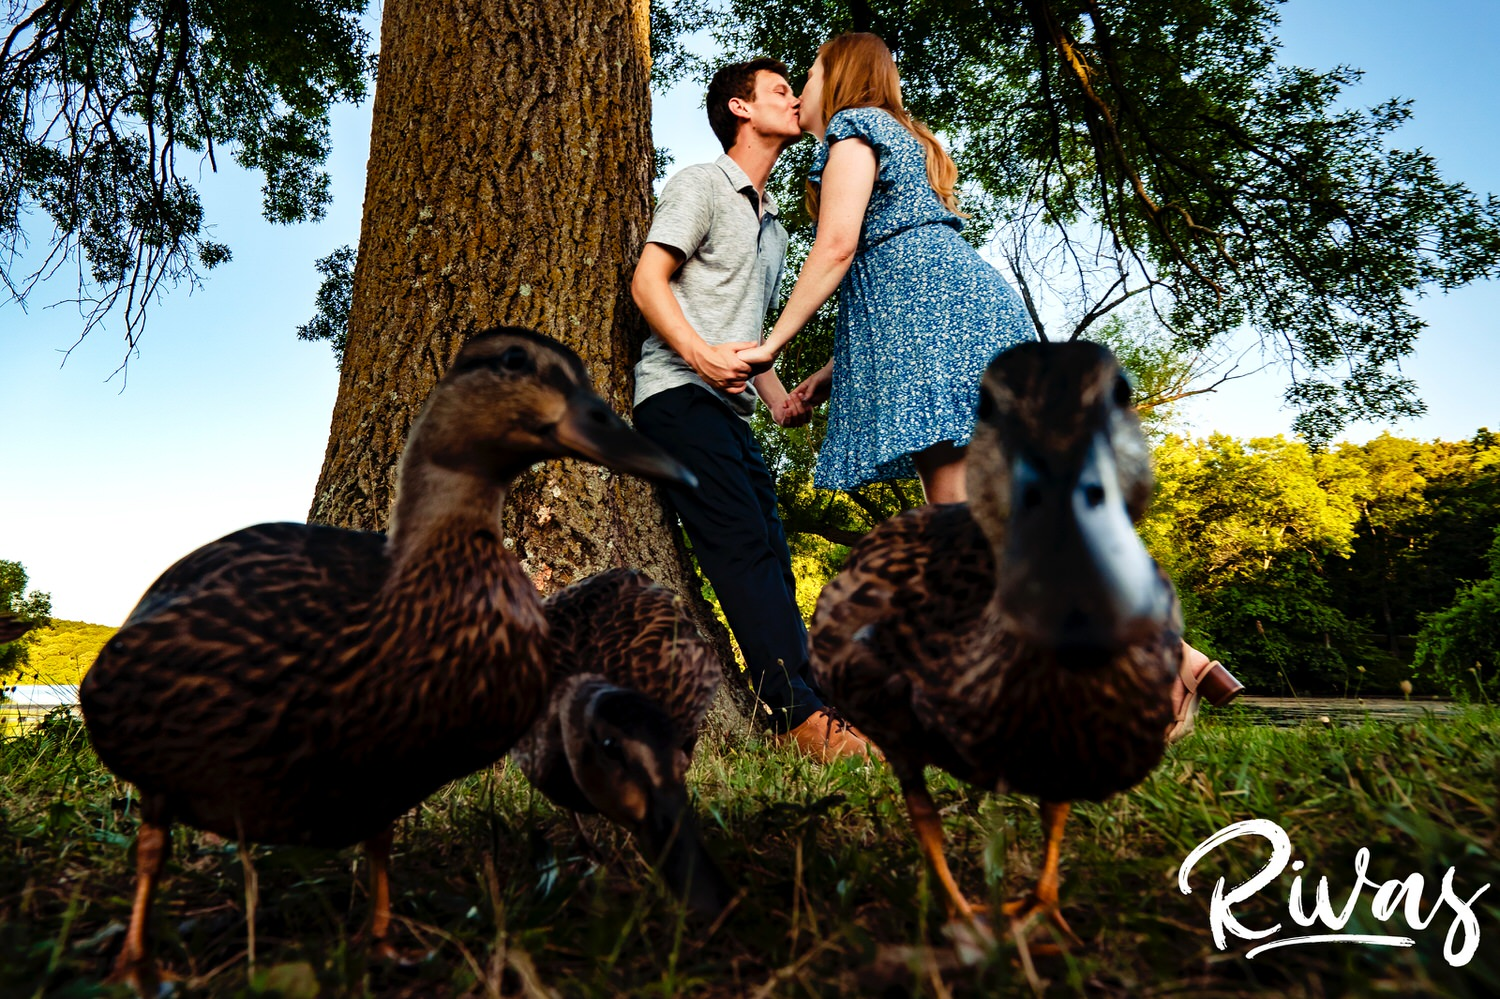 A colorful, candid picture of an engaged couple leaning in to share a kiss underneath a tree as a family of ducks walks in front of them directly towards the camera.